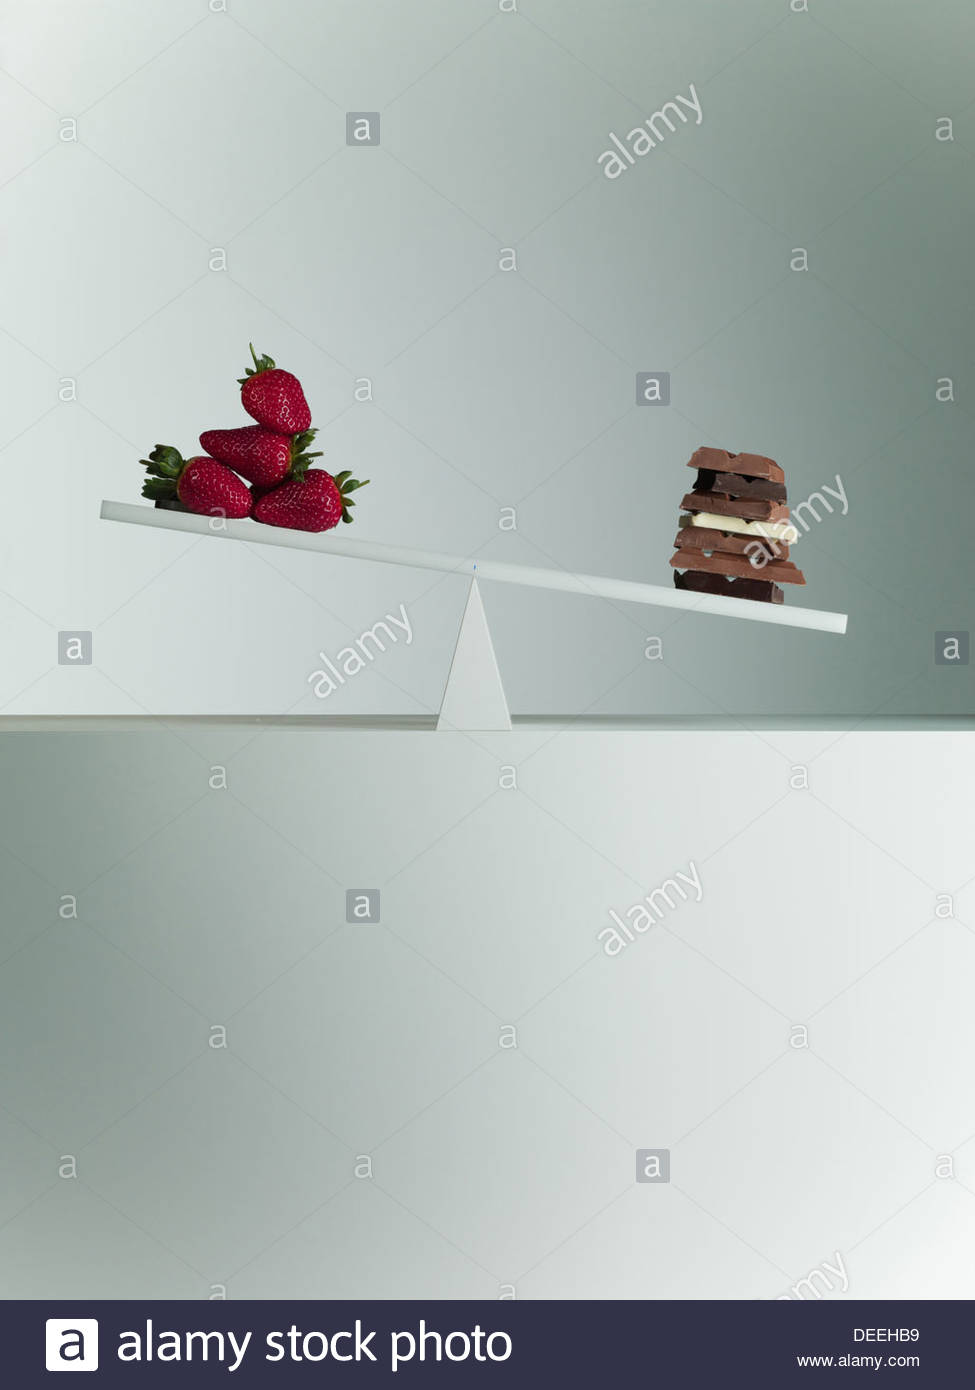 Chocolate bars tipping seesaw with strawberries on opposite end - Stock Image